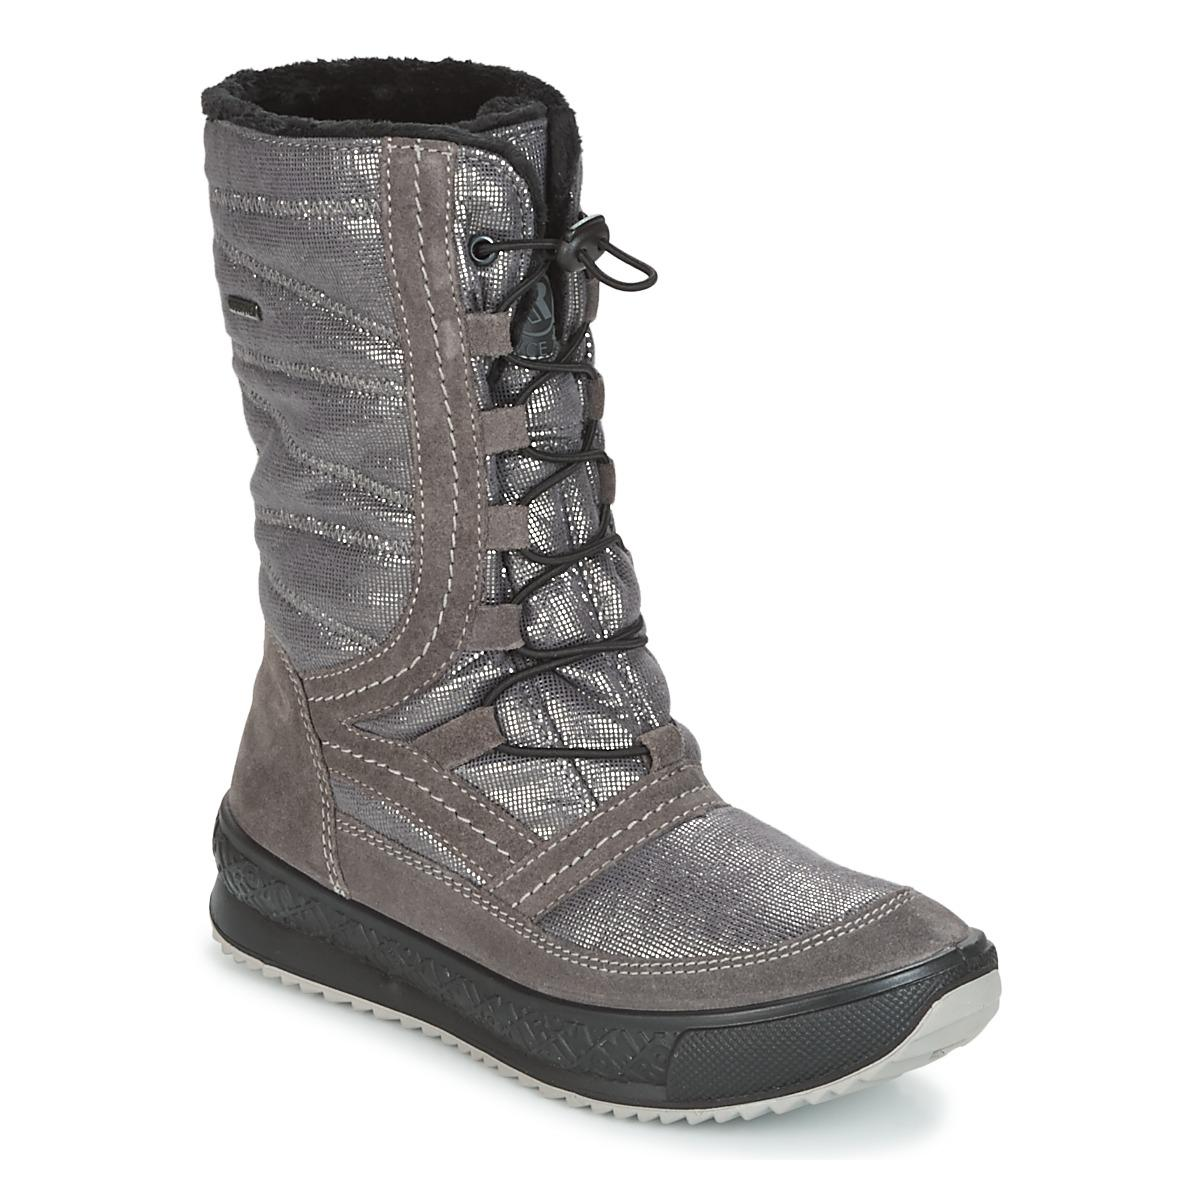 Davos 22, Womens Snow Boots Romika